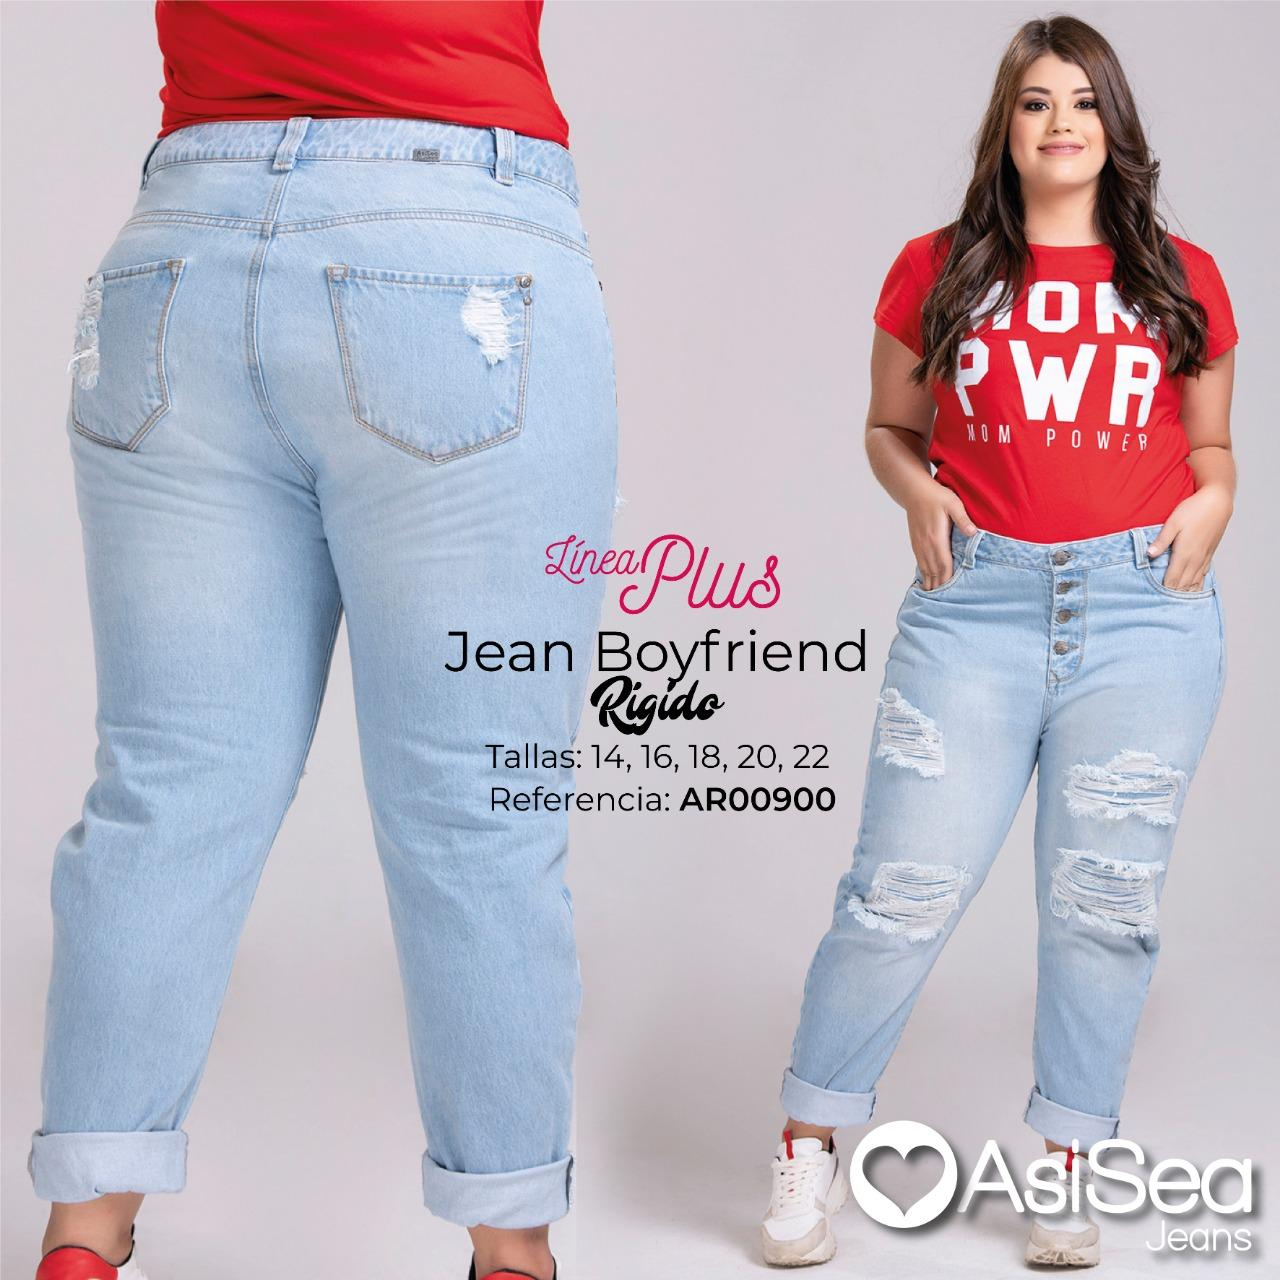 Jean Boyfriend Colombiano Tallas Especiales con Bolsillos  y Decorado con Destroyer